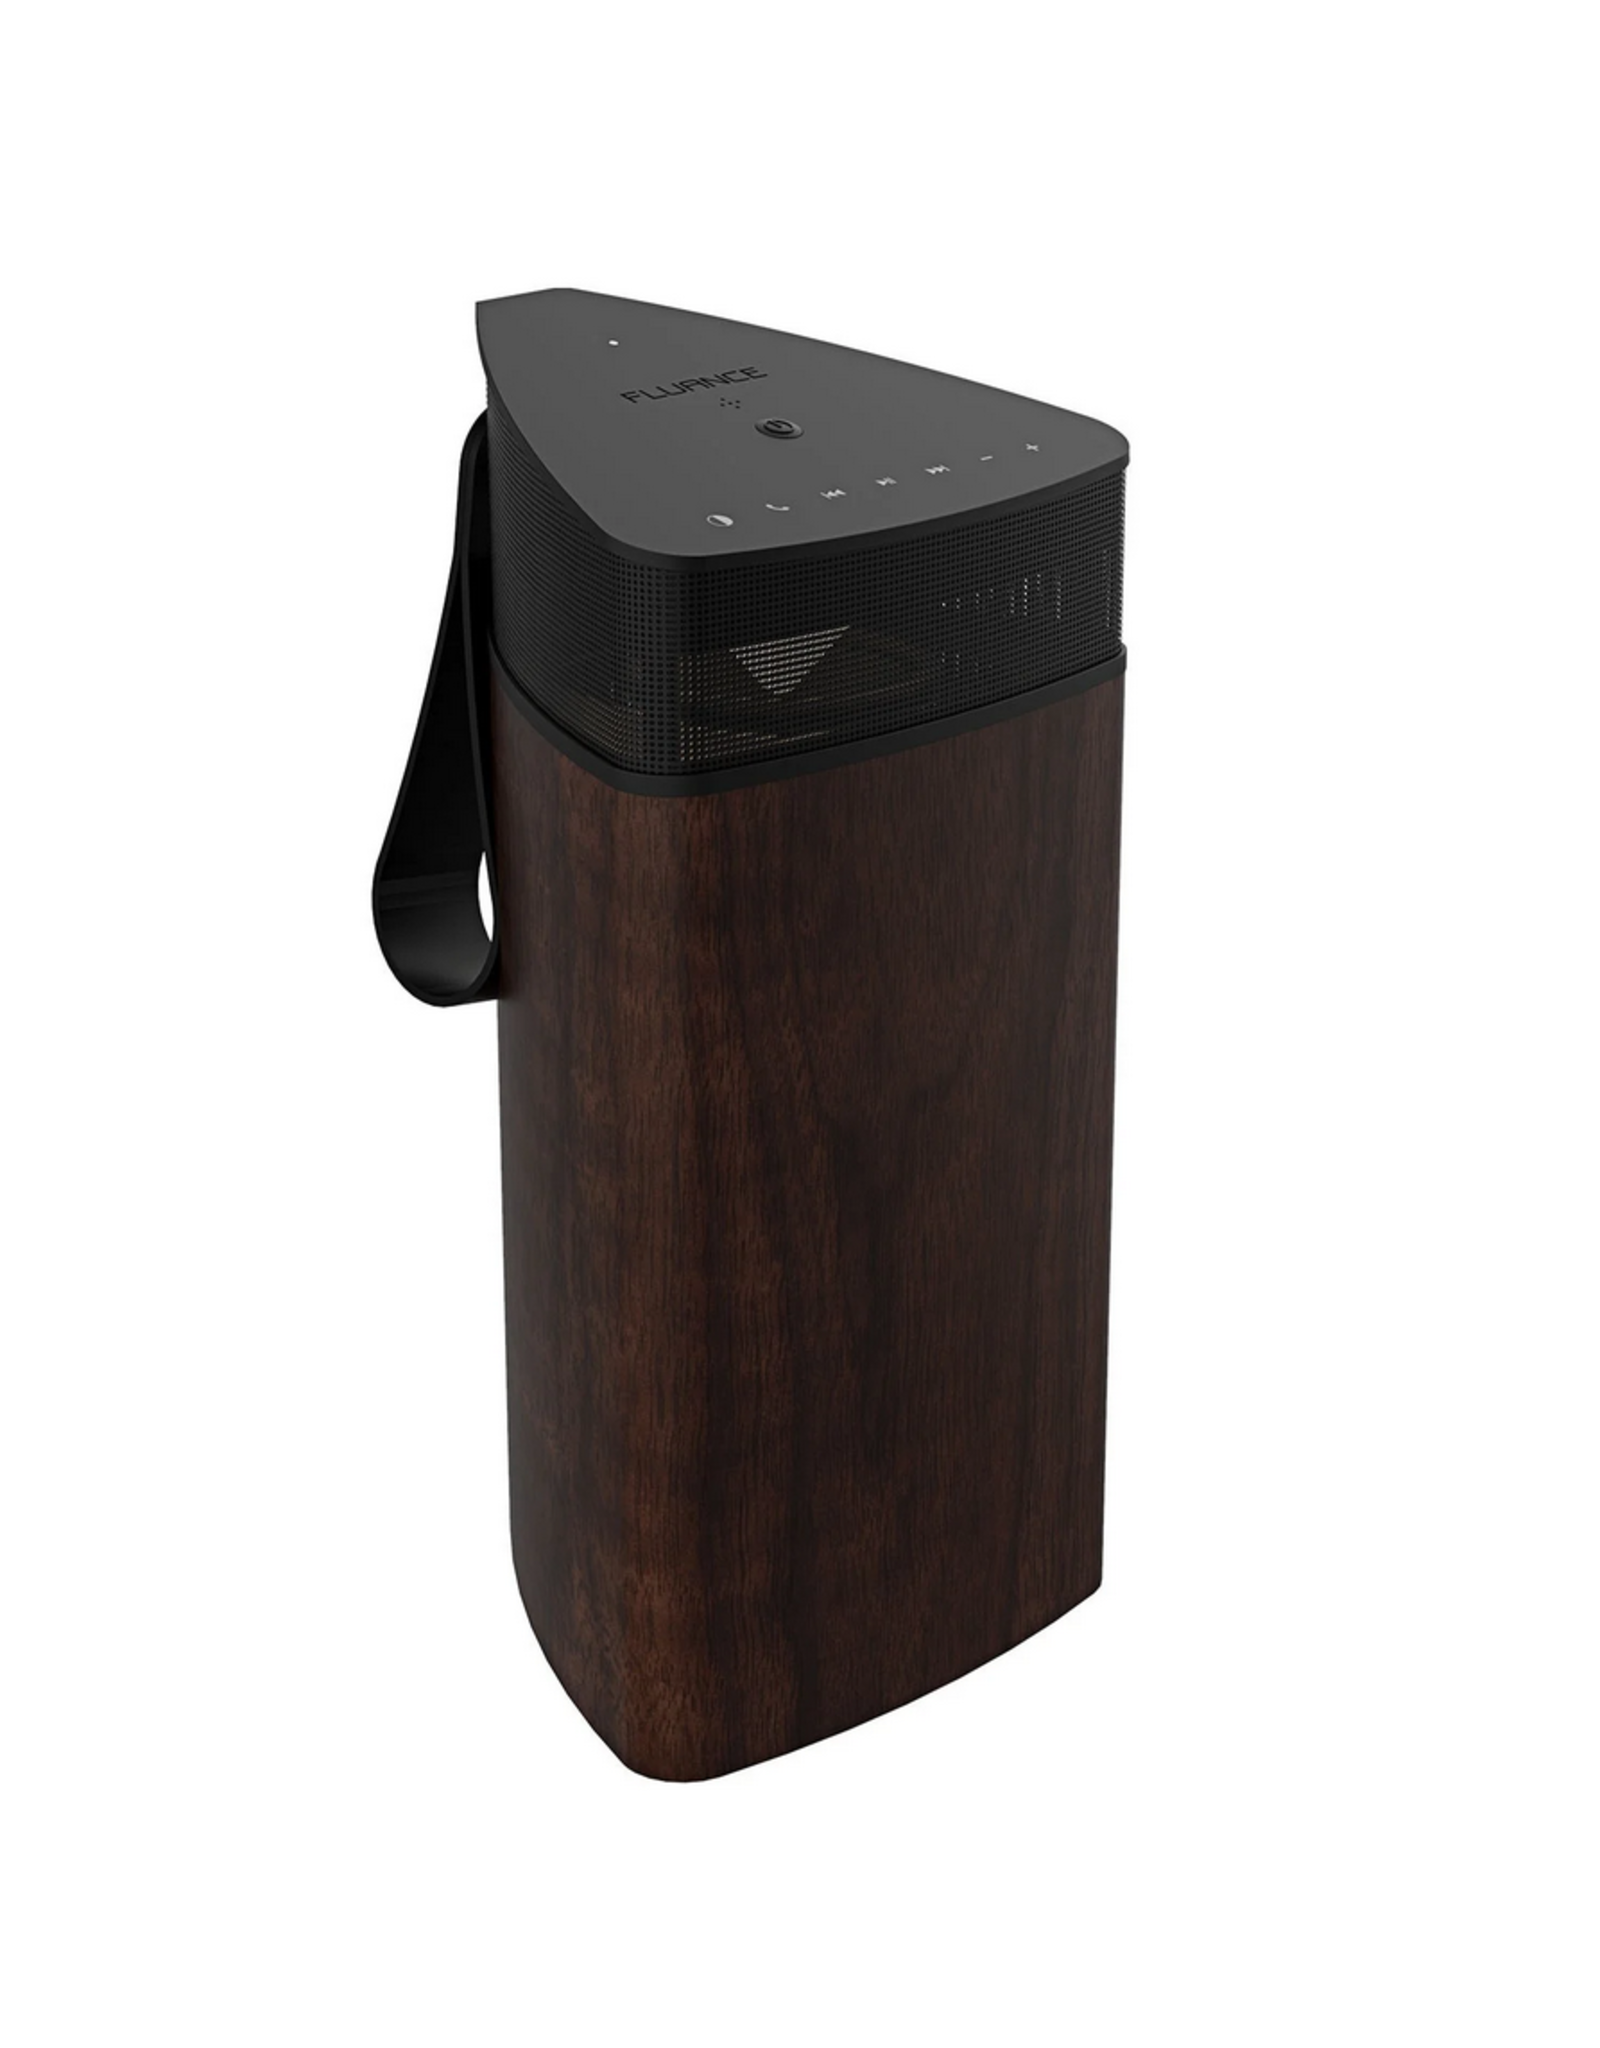 Fluance Fluance, Fi20 High Performance Portable Wireless 360 Degree Speaker, Natural Walnut